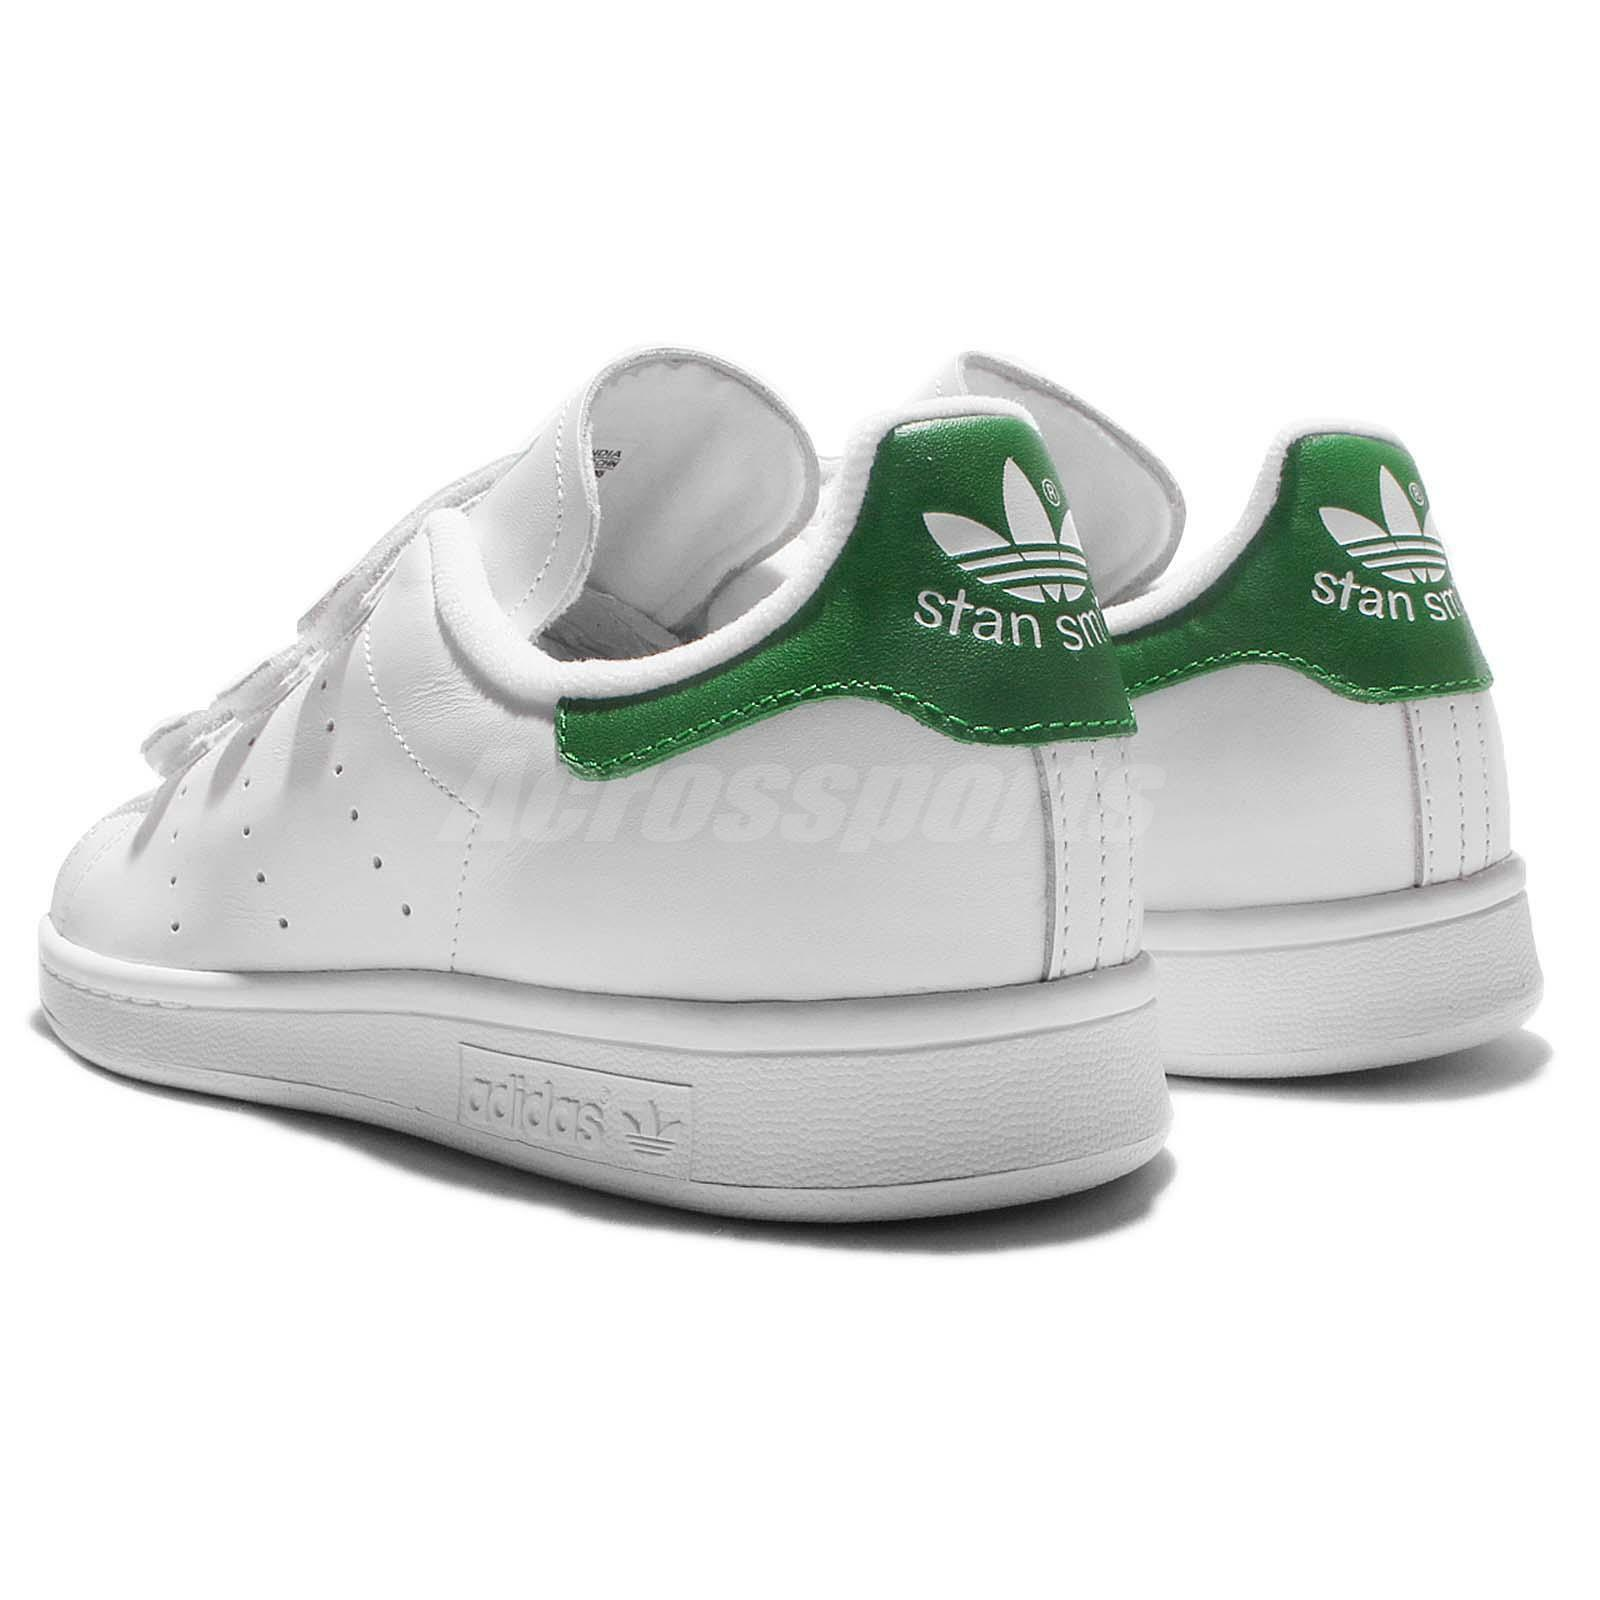 adidas Originals Smith Stan Smith Originals CF White Green Mens Srap Shoes Sneakers S75187 5a330c